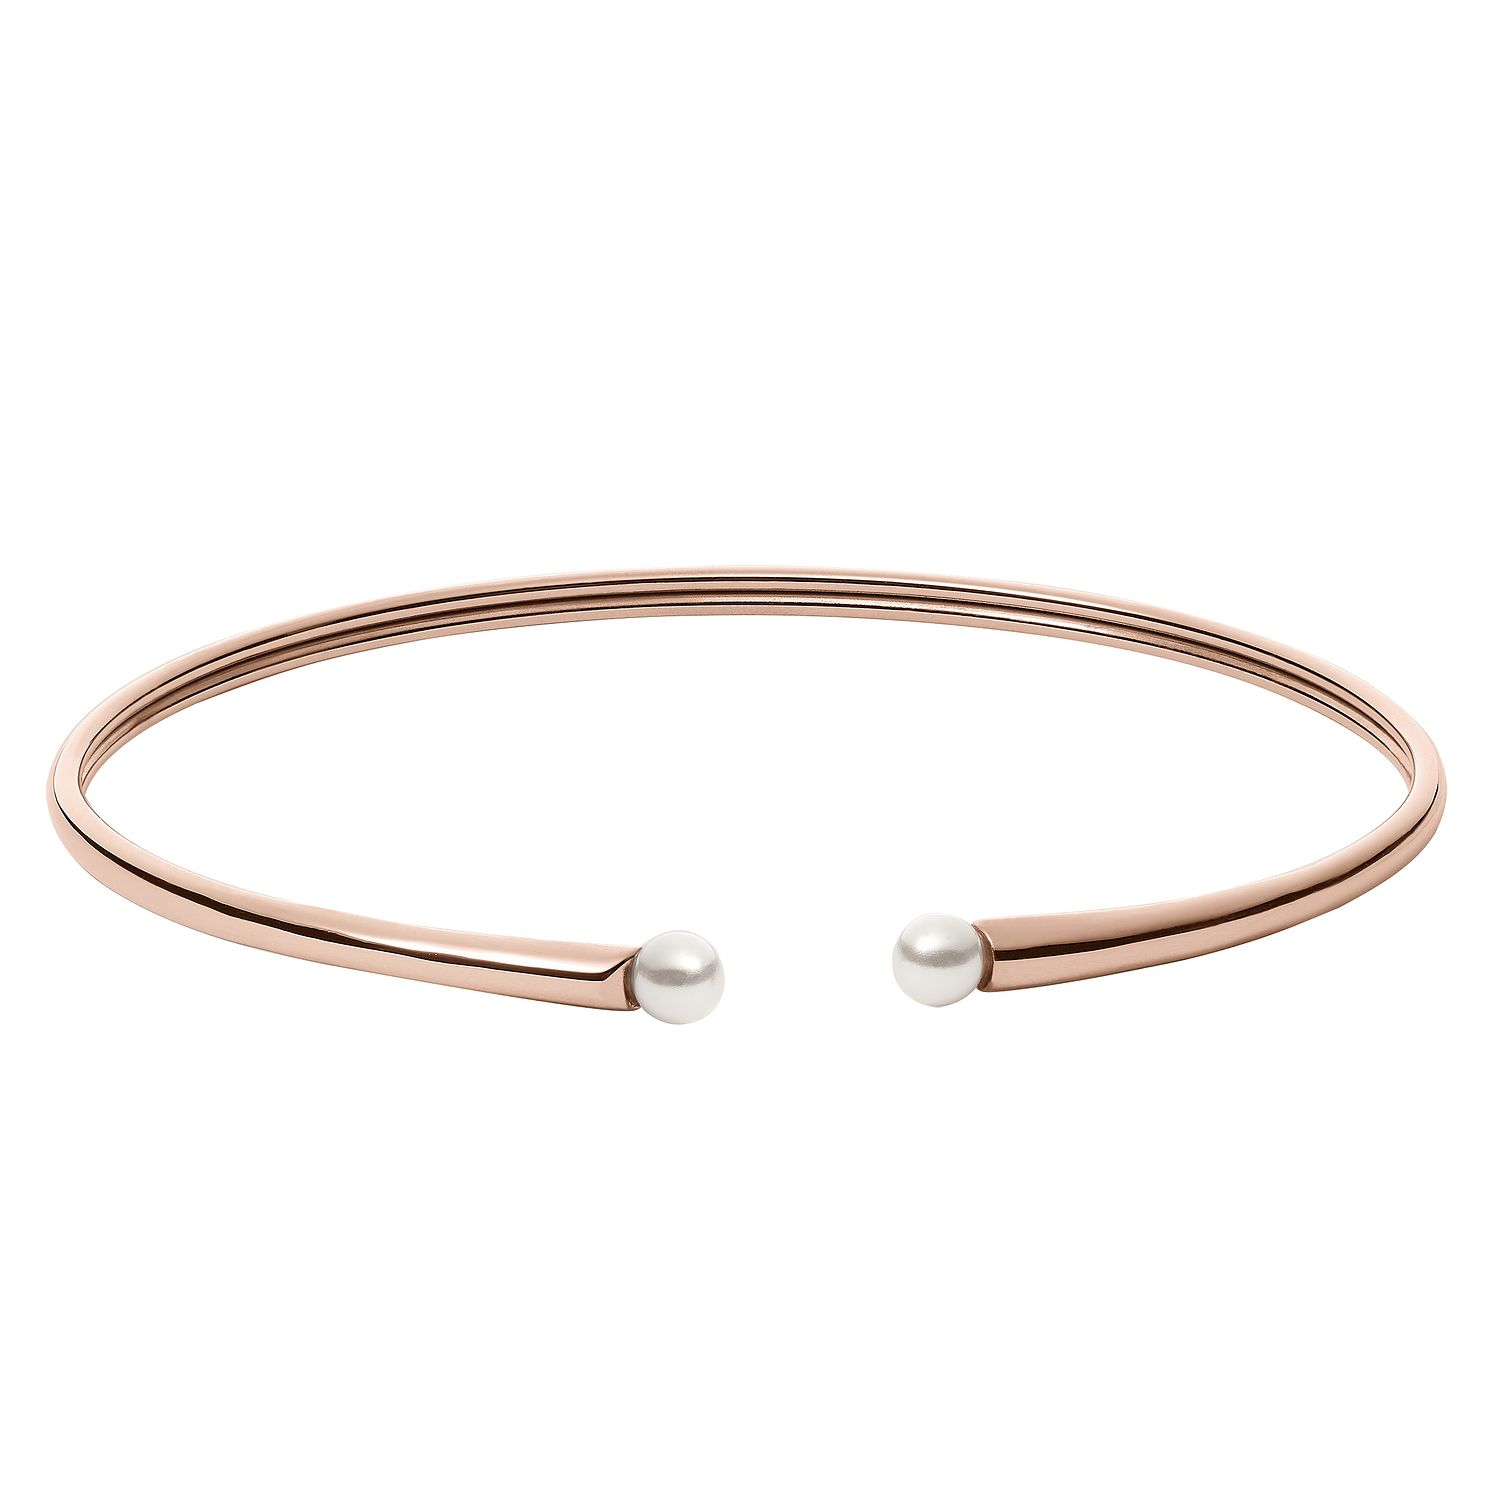 Skagen Agnethe Ladies' Rose Gold Tone Pearl Bangle - Product number 8601372